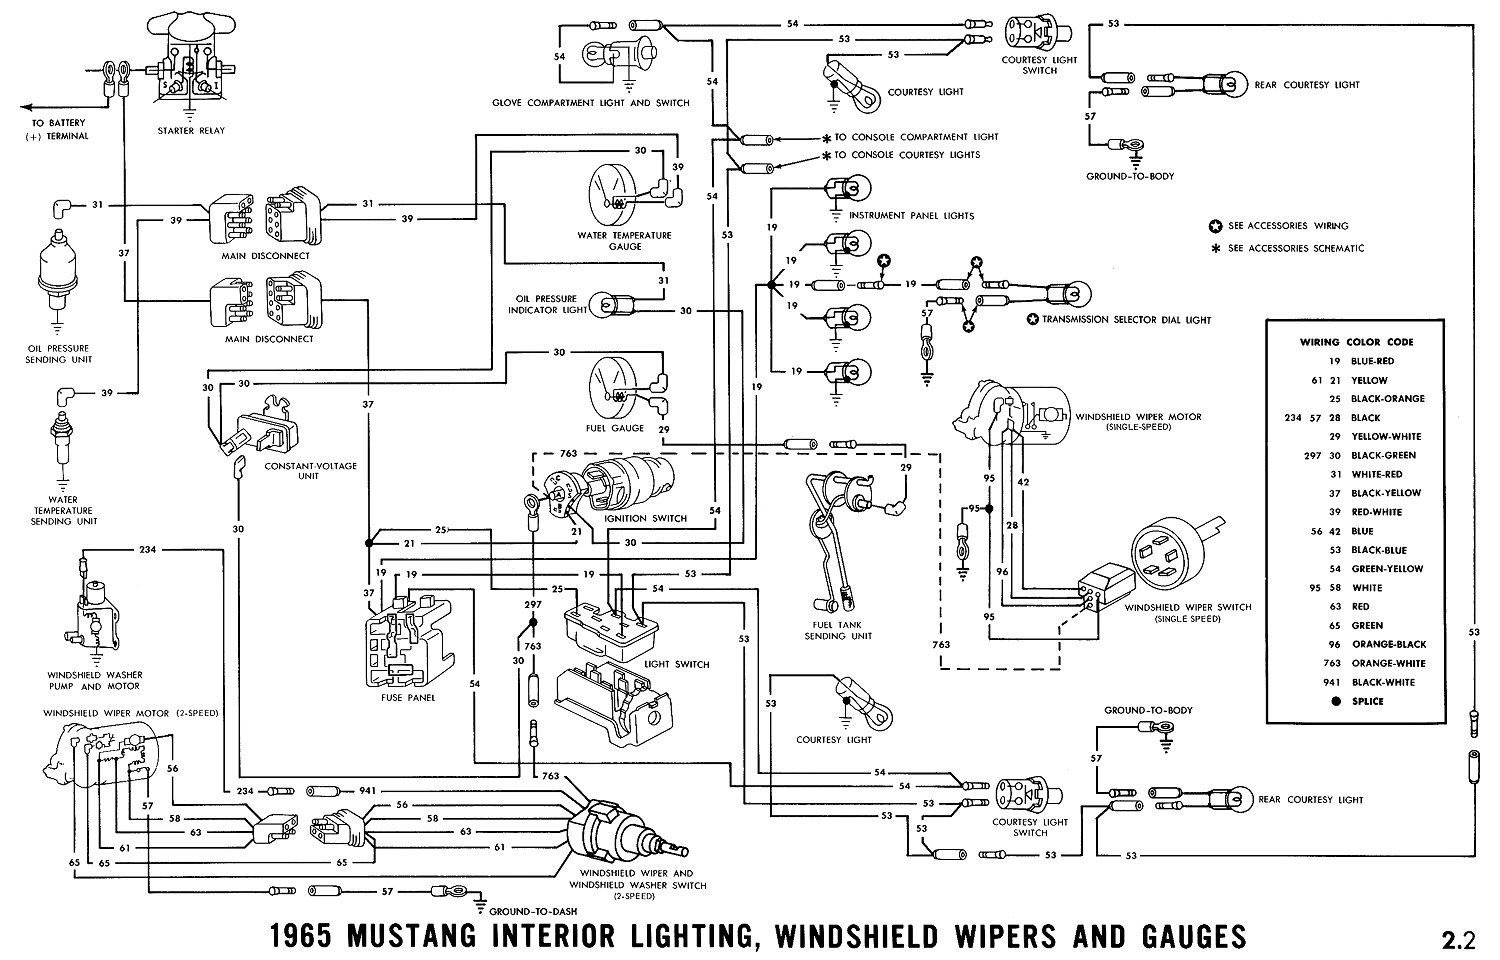 1965 mustang wiring diagrams average joe restoration rh averagejoerestoration com 1965 mustang horn wiring diagram 1965 mustang color wiring diagram